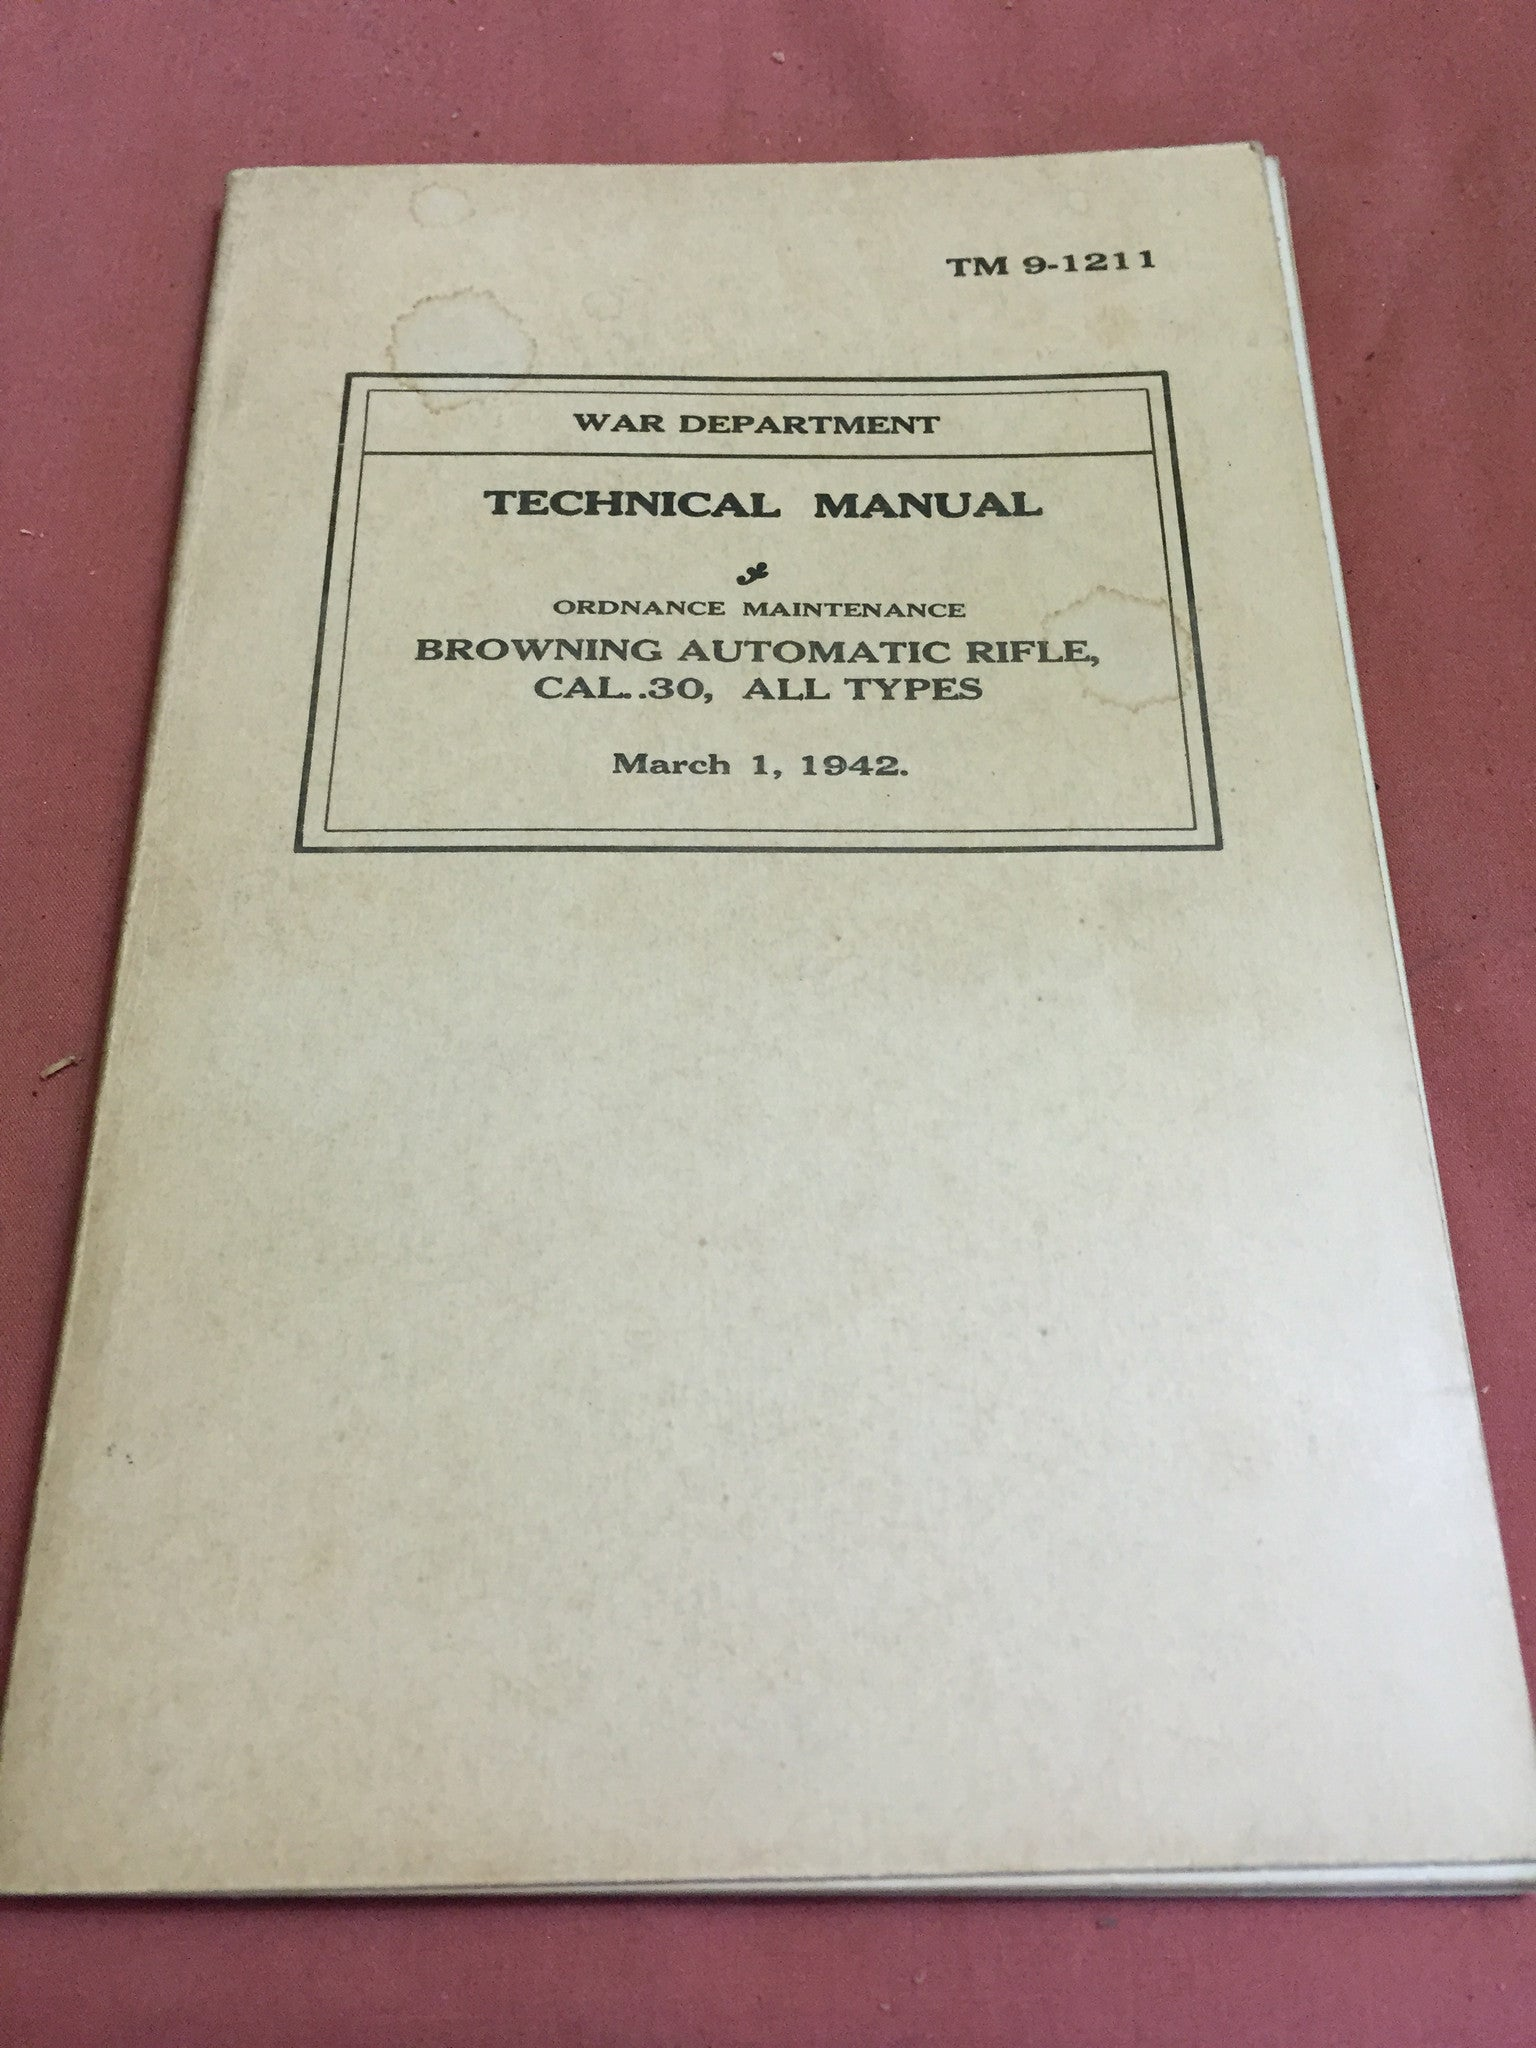 TM 9-1211 Ordnance Maintenance Techincal Manual